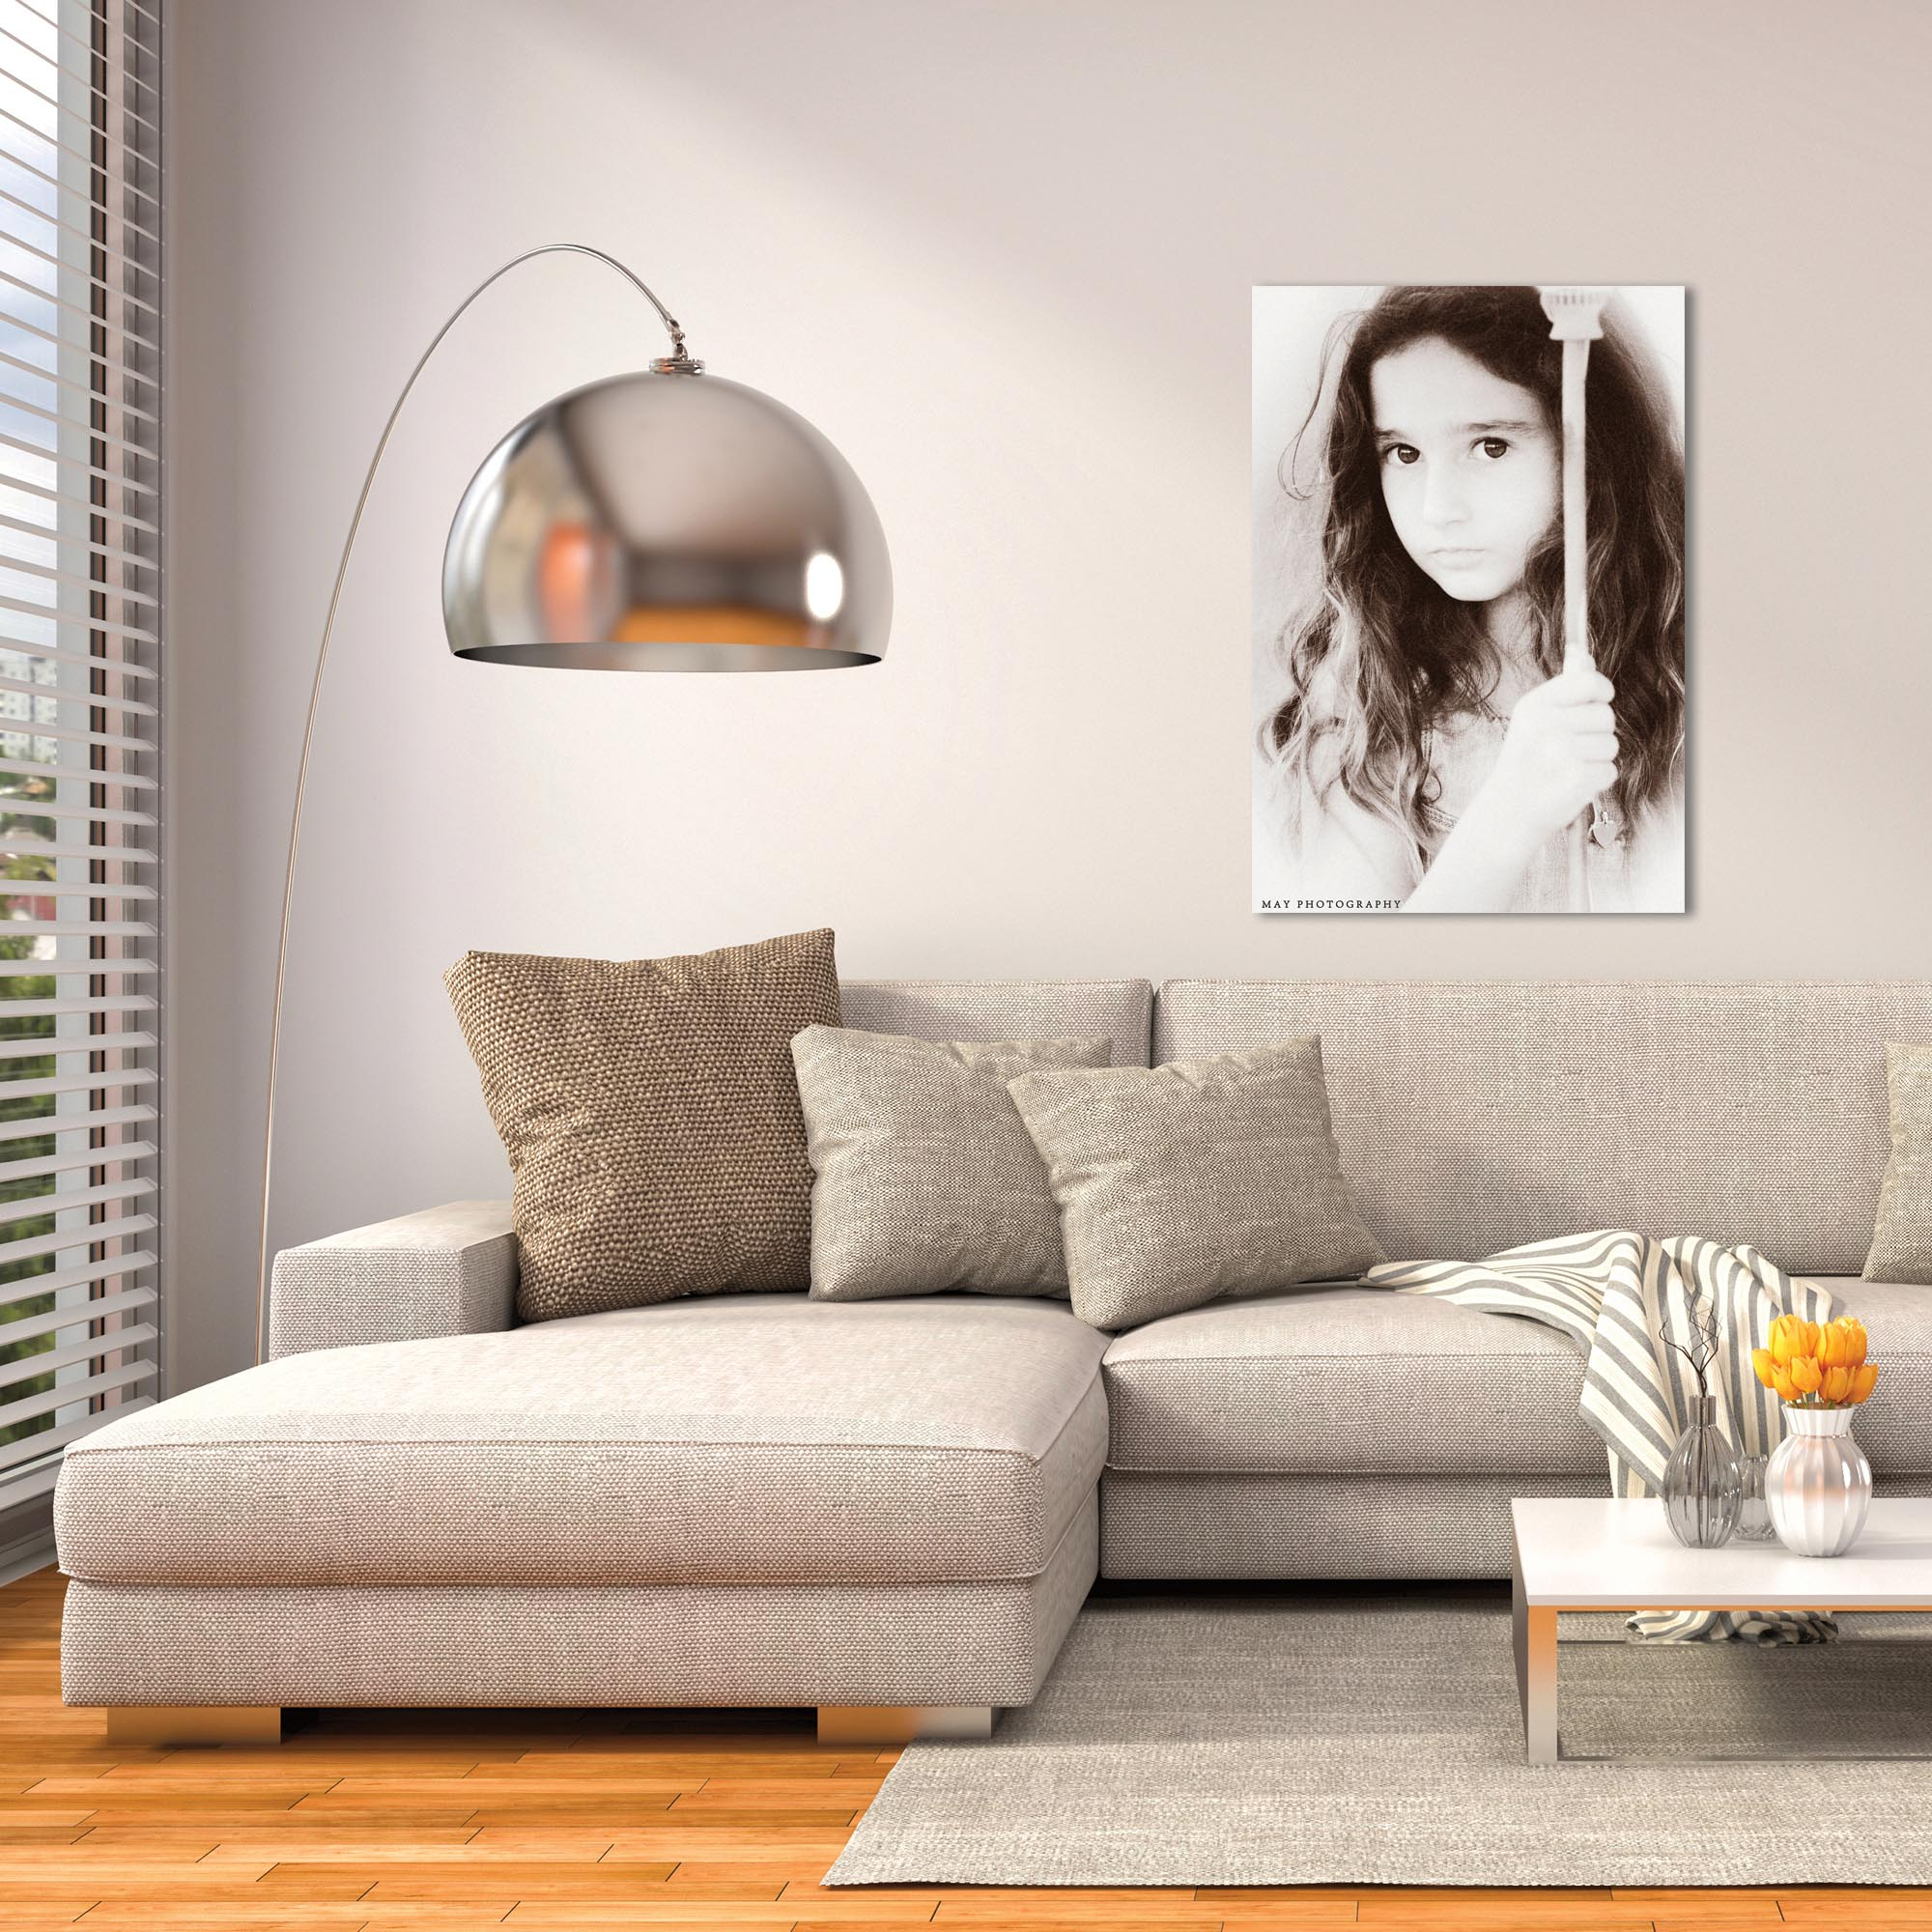 Casual Wall Art 'Little Lady' - People Decor on Metal or Plexiglass - Lifestyle View